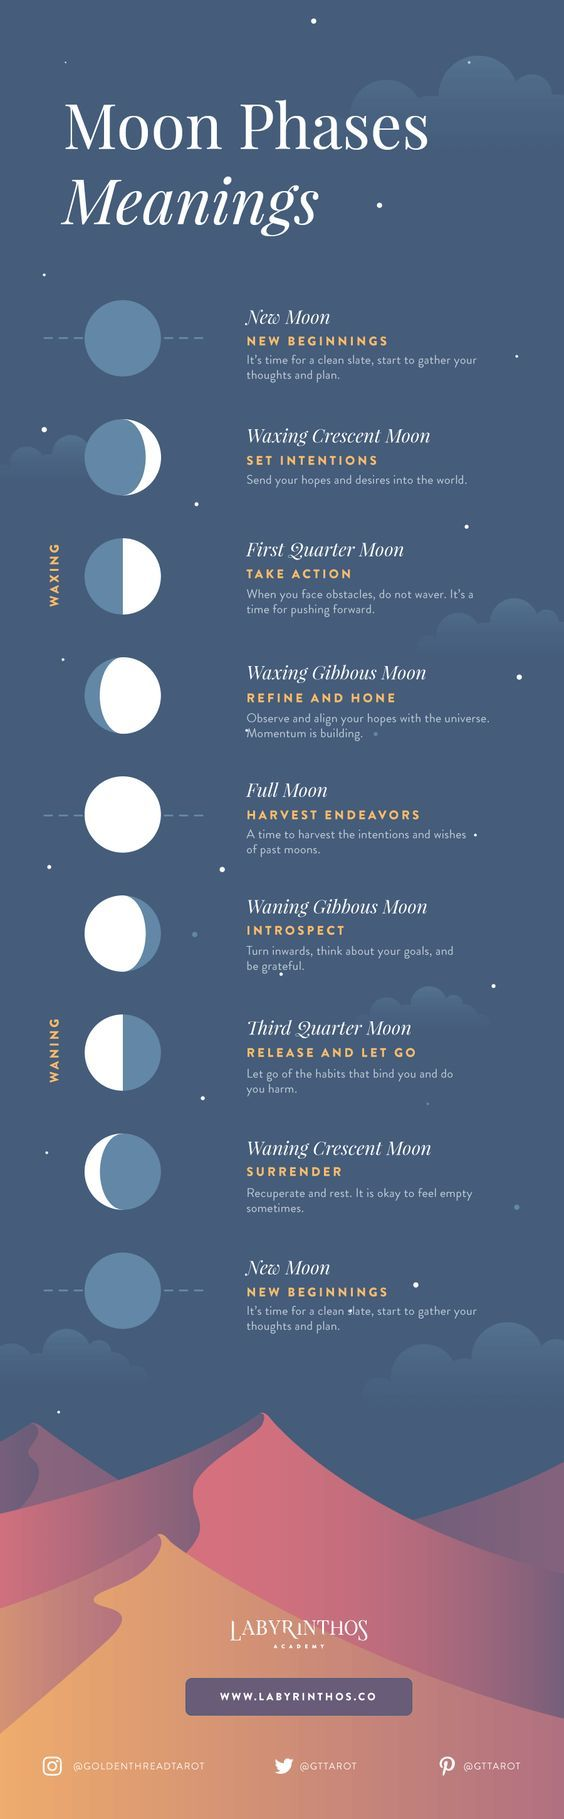 1011 Best Mental Rolodex Images On Pinterest Physics Astronomy Keelynet News 2012 Free Energy Gravity Control Electronic Health Learn How To Work With Moon Phases A Beginners Guide